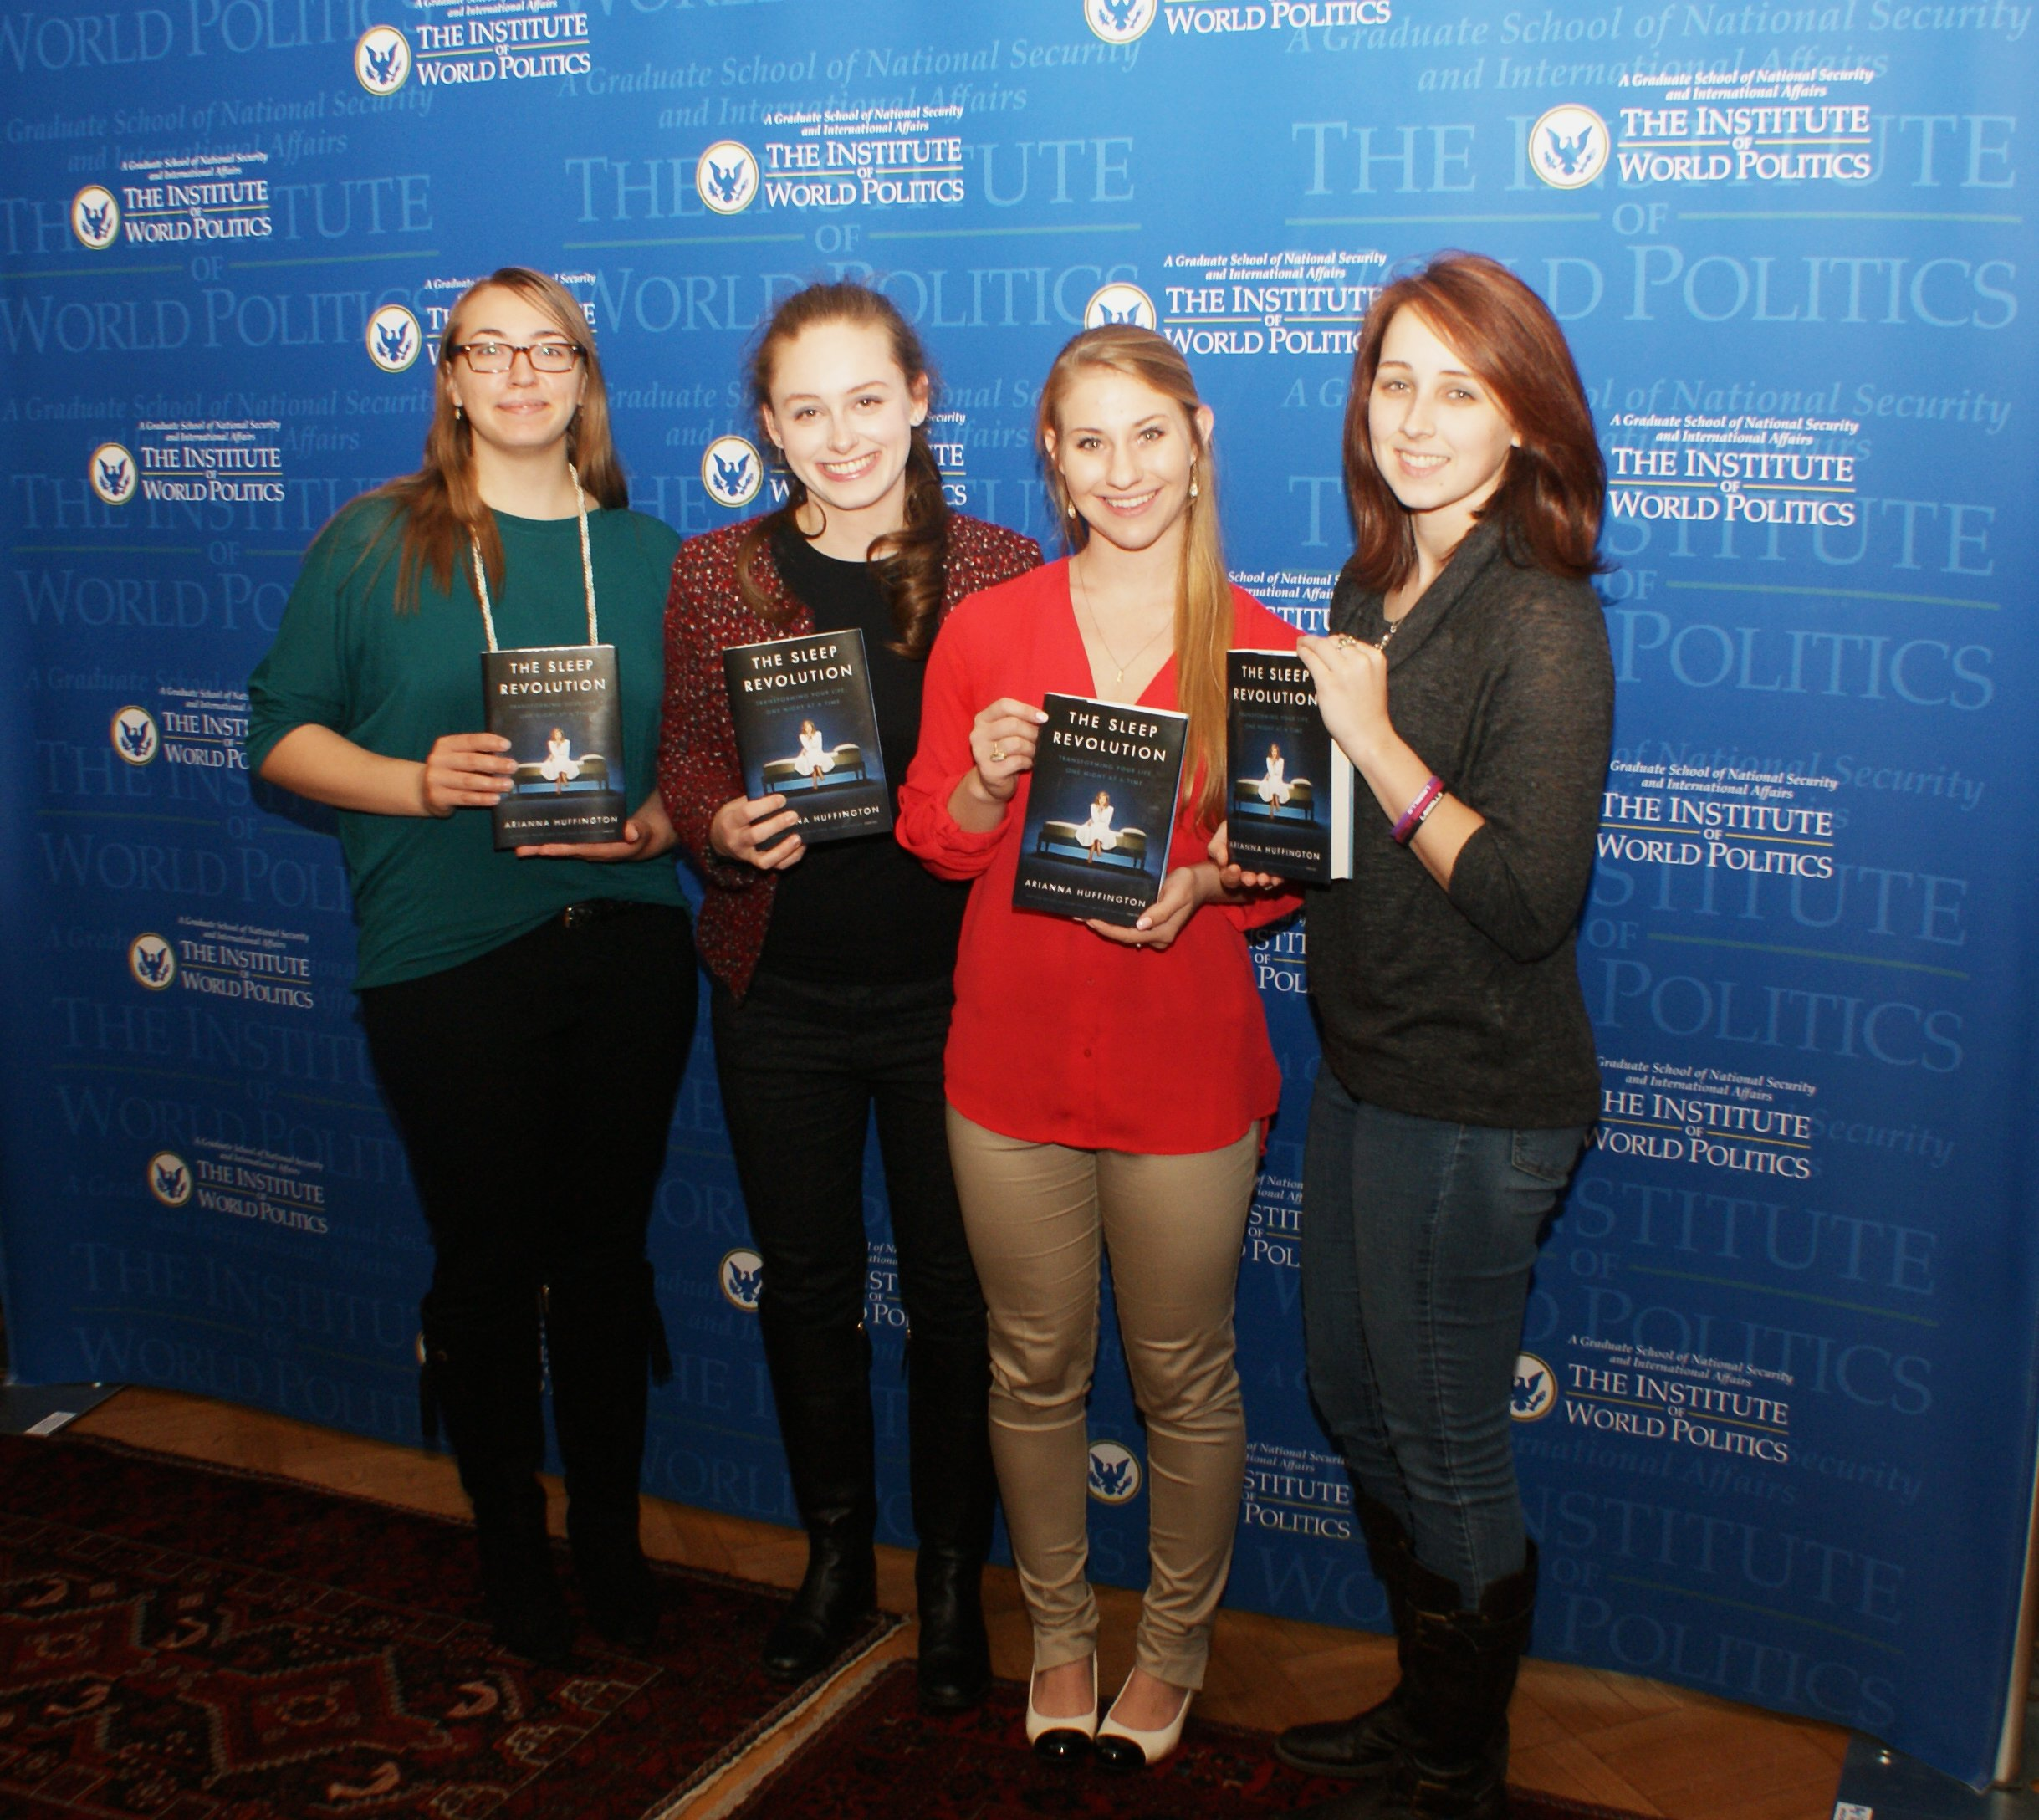 IWP students with The Sleep Revolution by Arianna Huffington